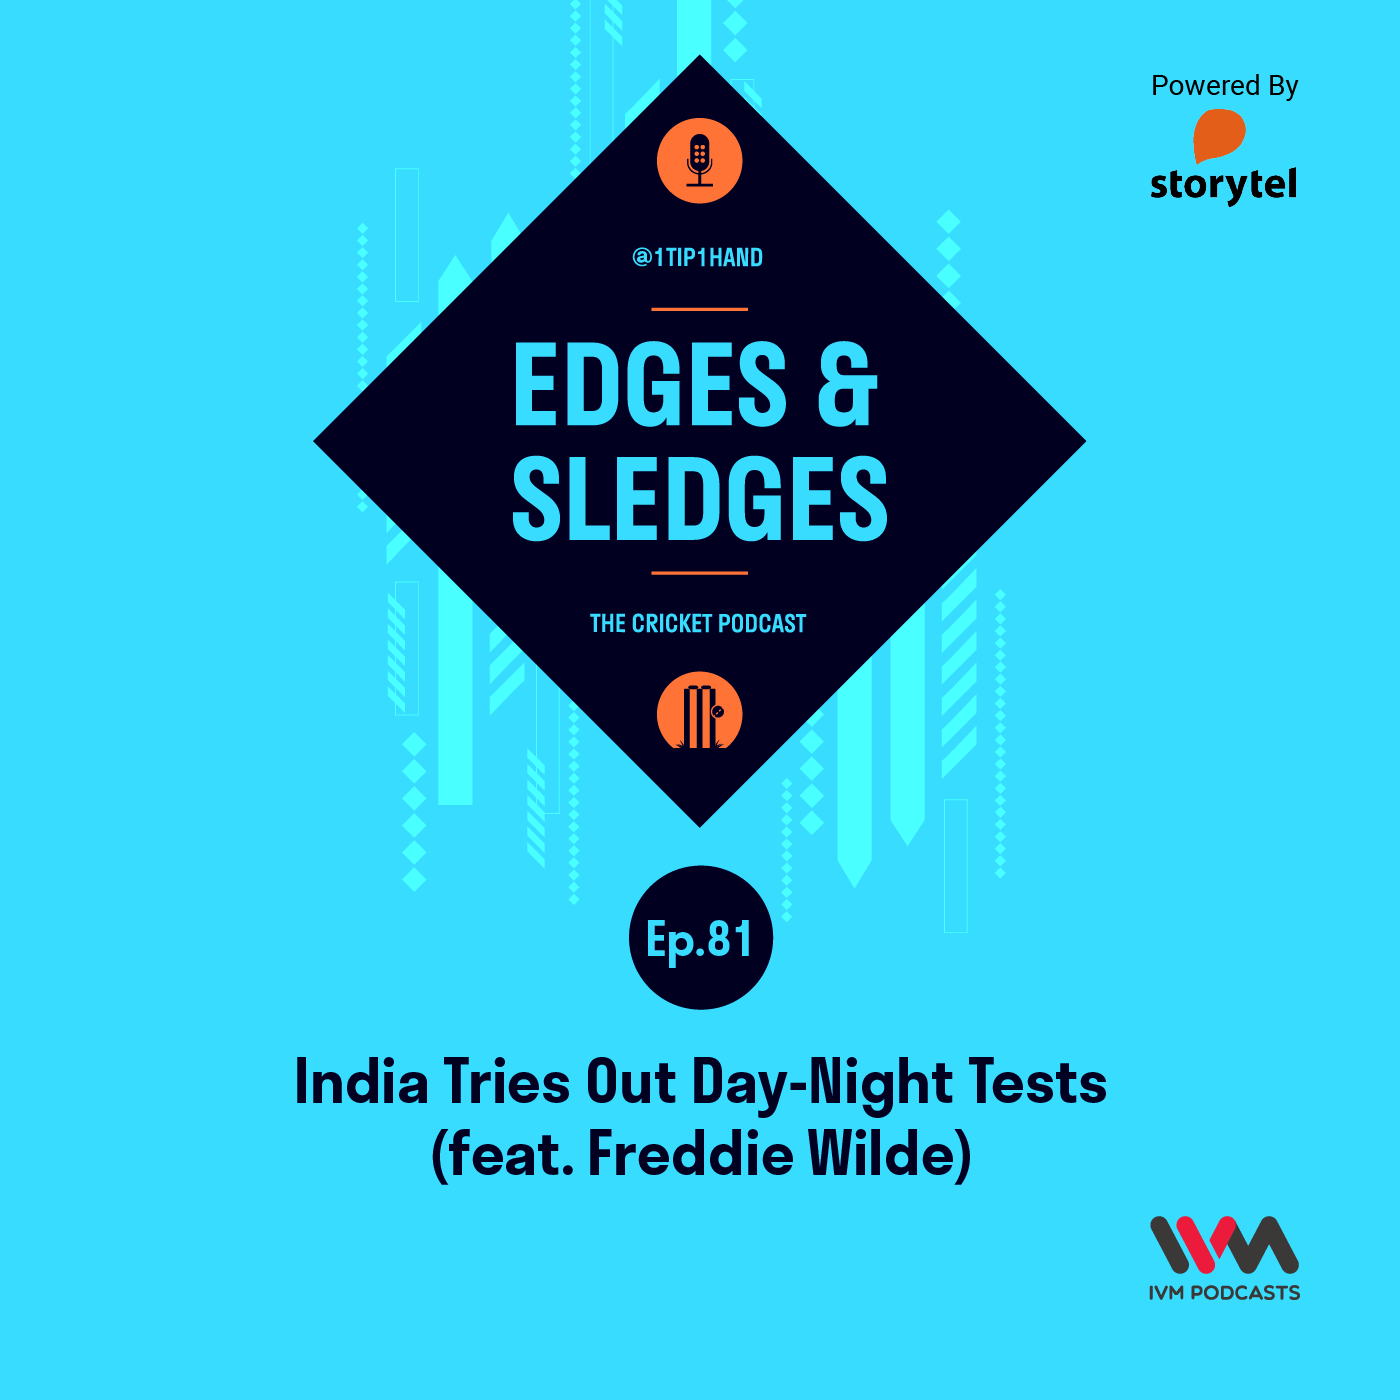 Ep. 81: India Tries Out Day-Night Tests (feat. Freddie Wilde)